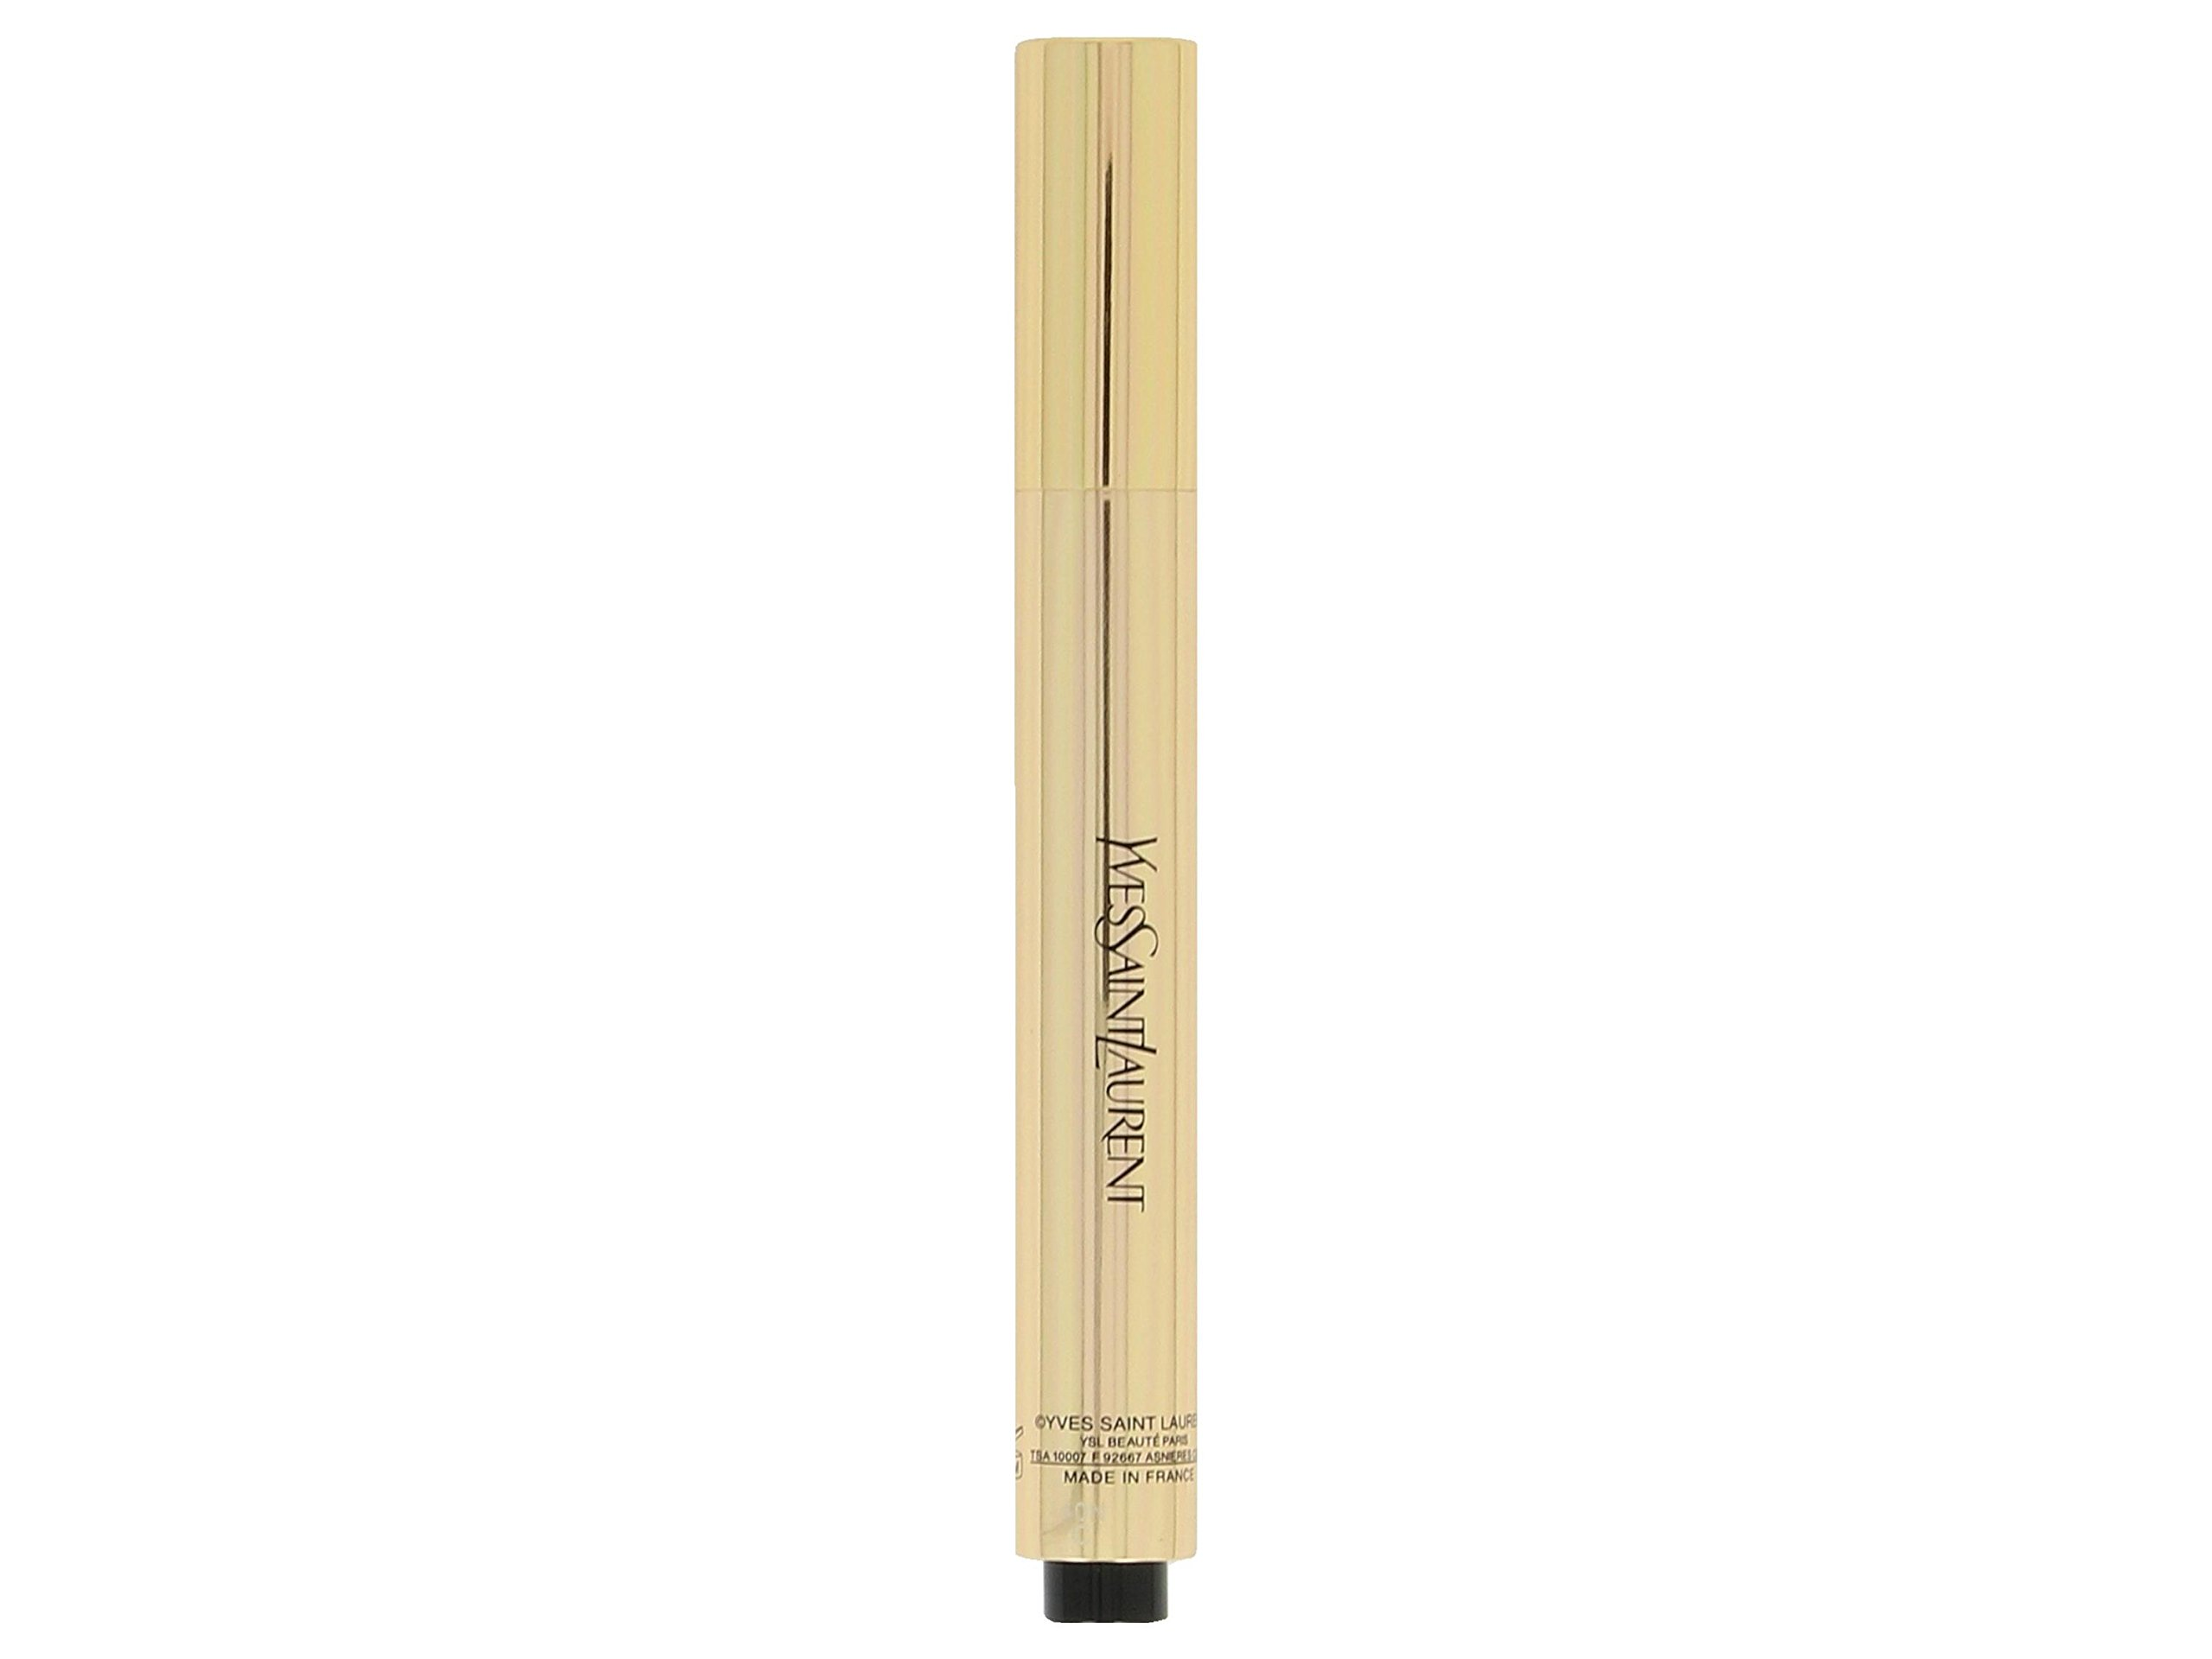 Yves Saint Laurent Touche Eclat Radiant Touch Highlighter for Women, 3 Light Peach, 0.08 Ounce